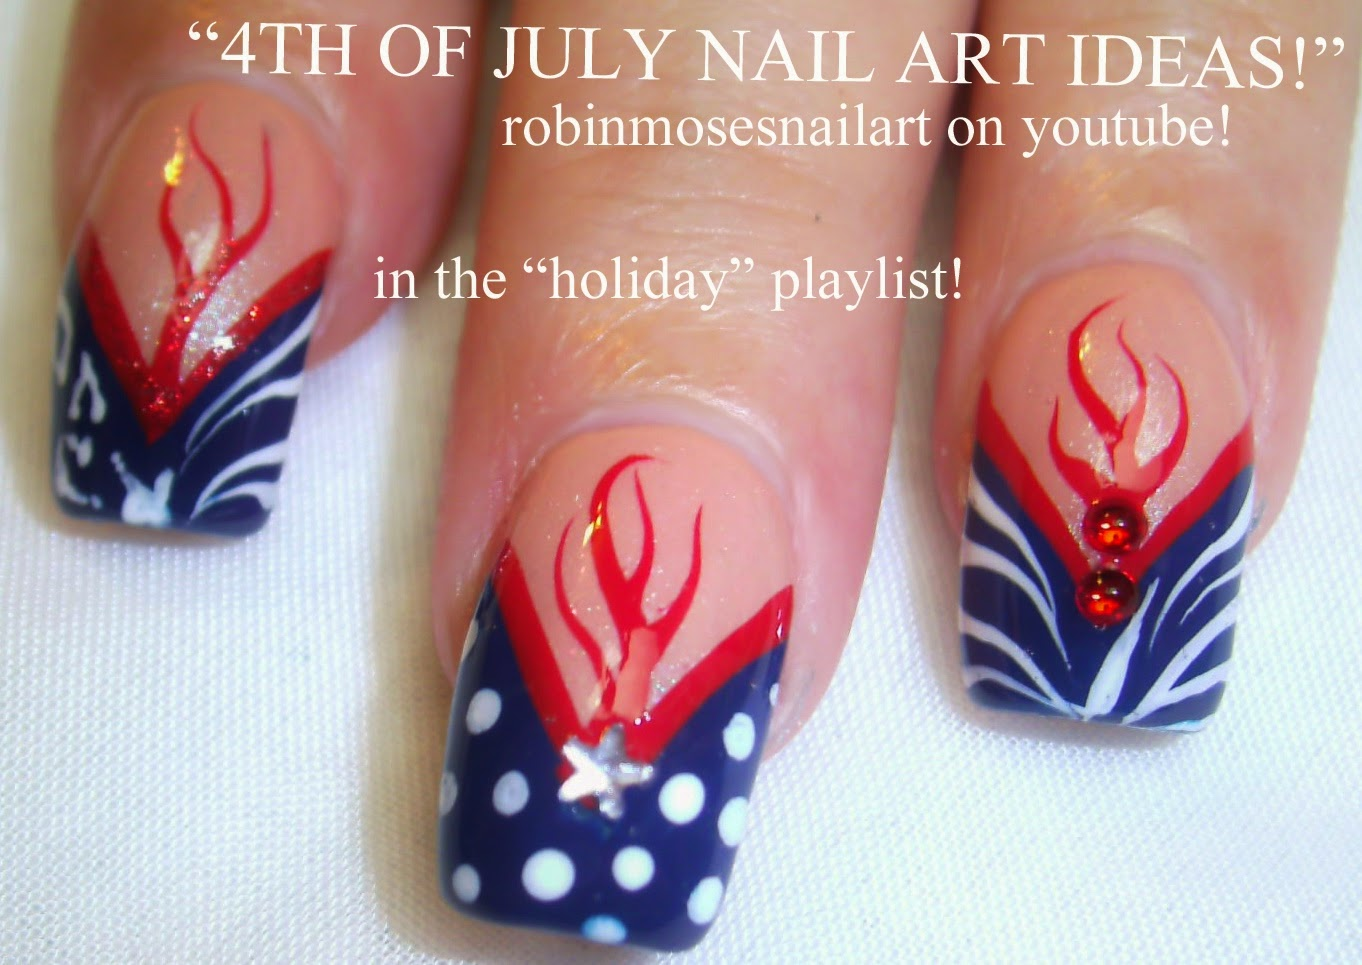 Robin moses nail art memorial day nail art memorial day nails nail art 4th of july nails prinsesfo Gallery